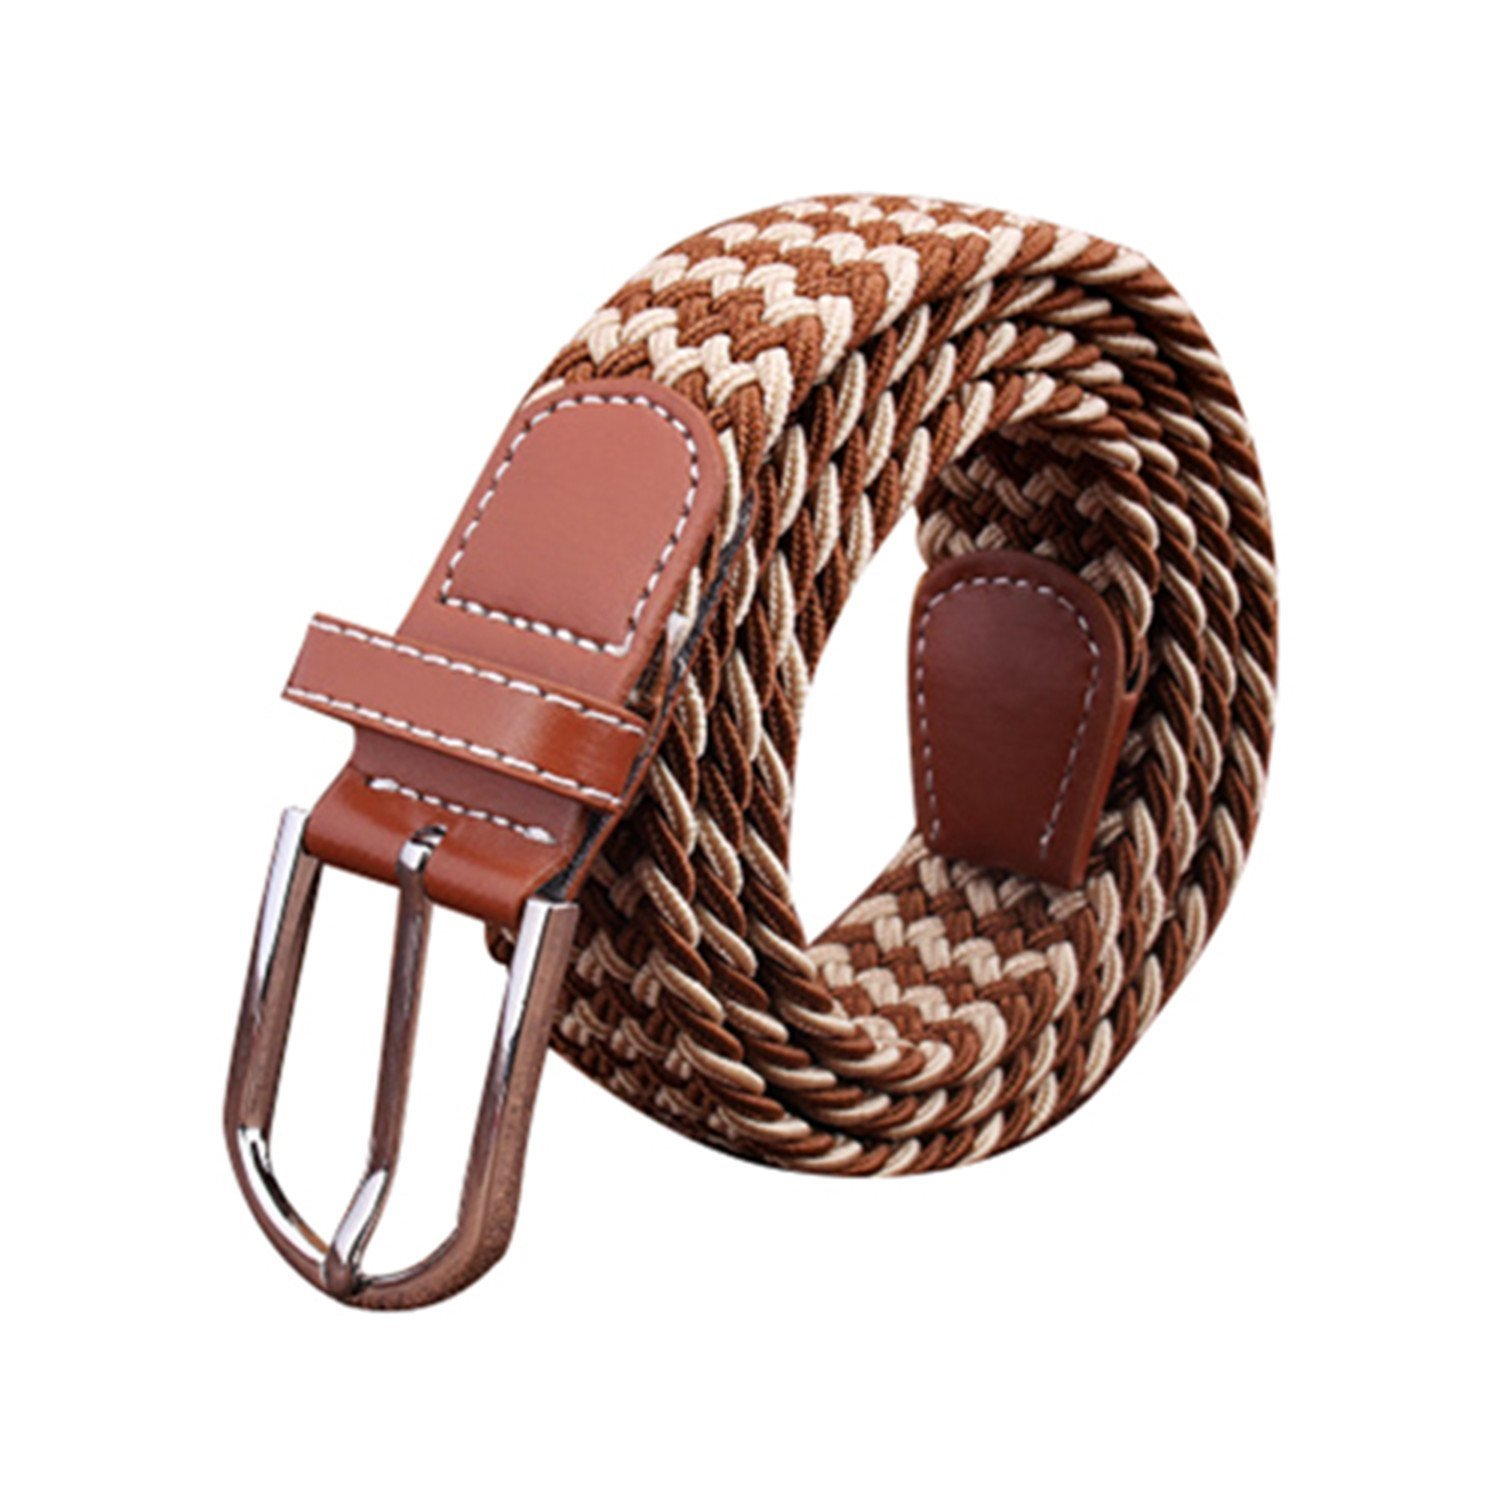 OnIn?Fashion Men Elastic Stretch Woven Canvas Leather Pin Buckle Waist Belt khaki Blue 8 Colors